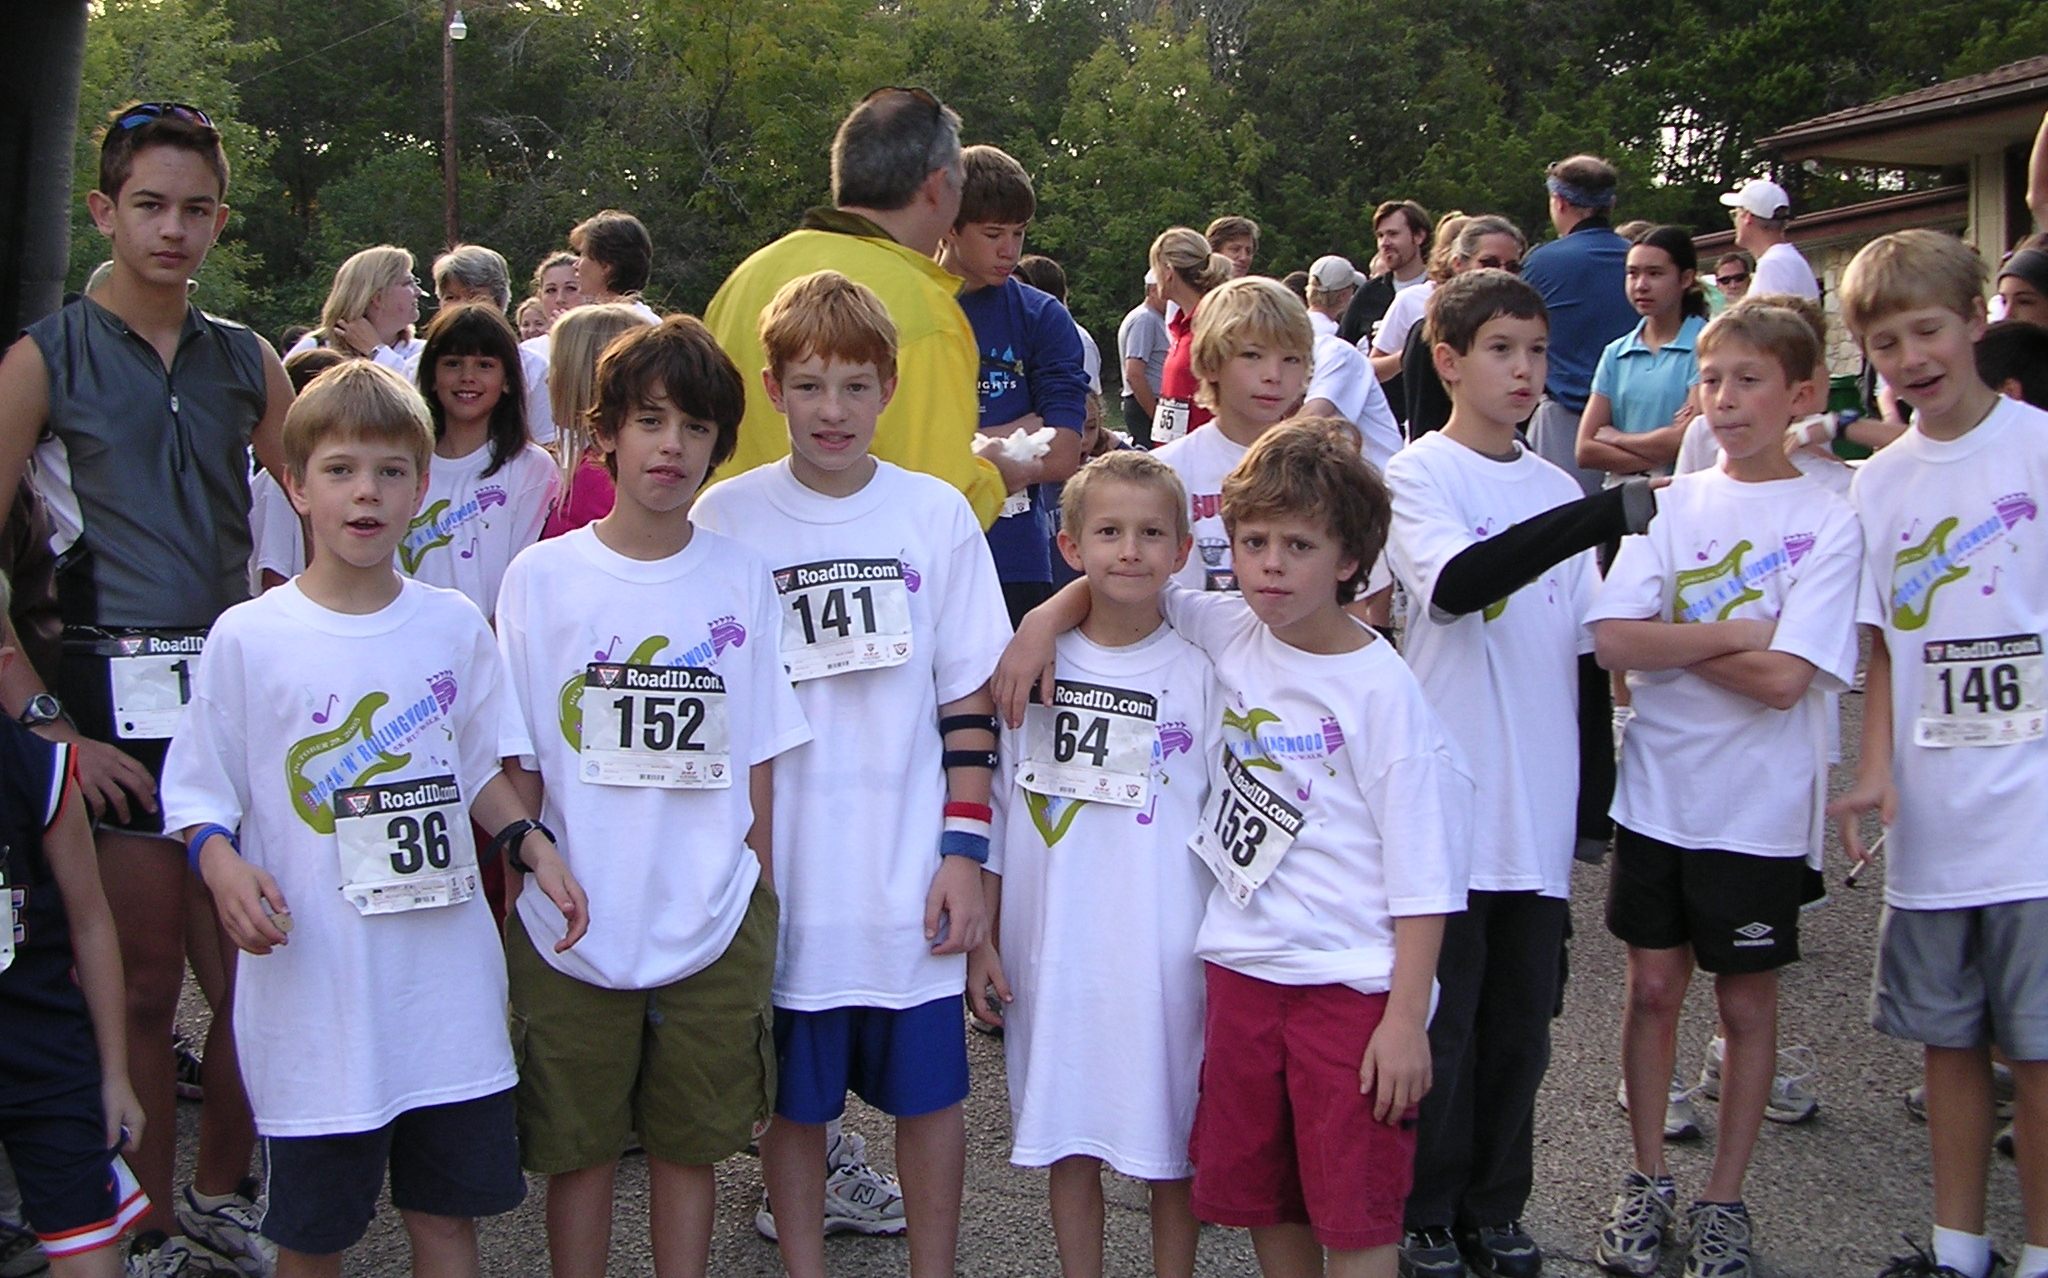 Runners from the 2005 race